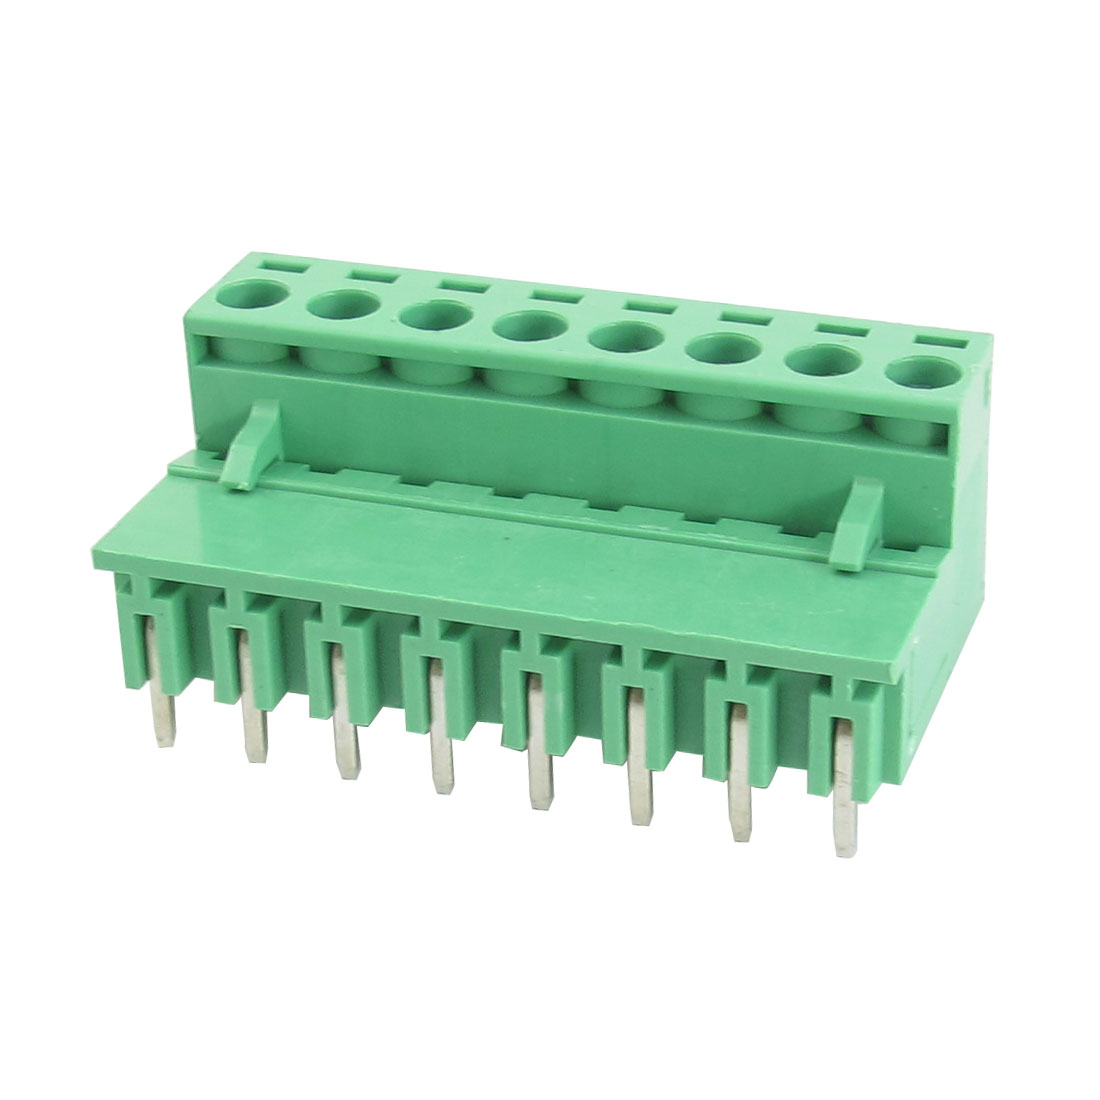 PCB Pluggable Universal Terminal Block Connector 8P 8-Way AC 300V 16A